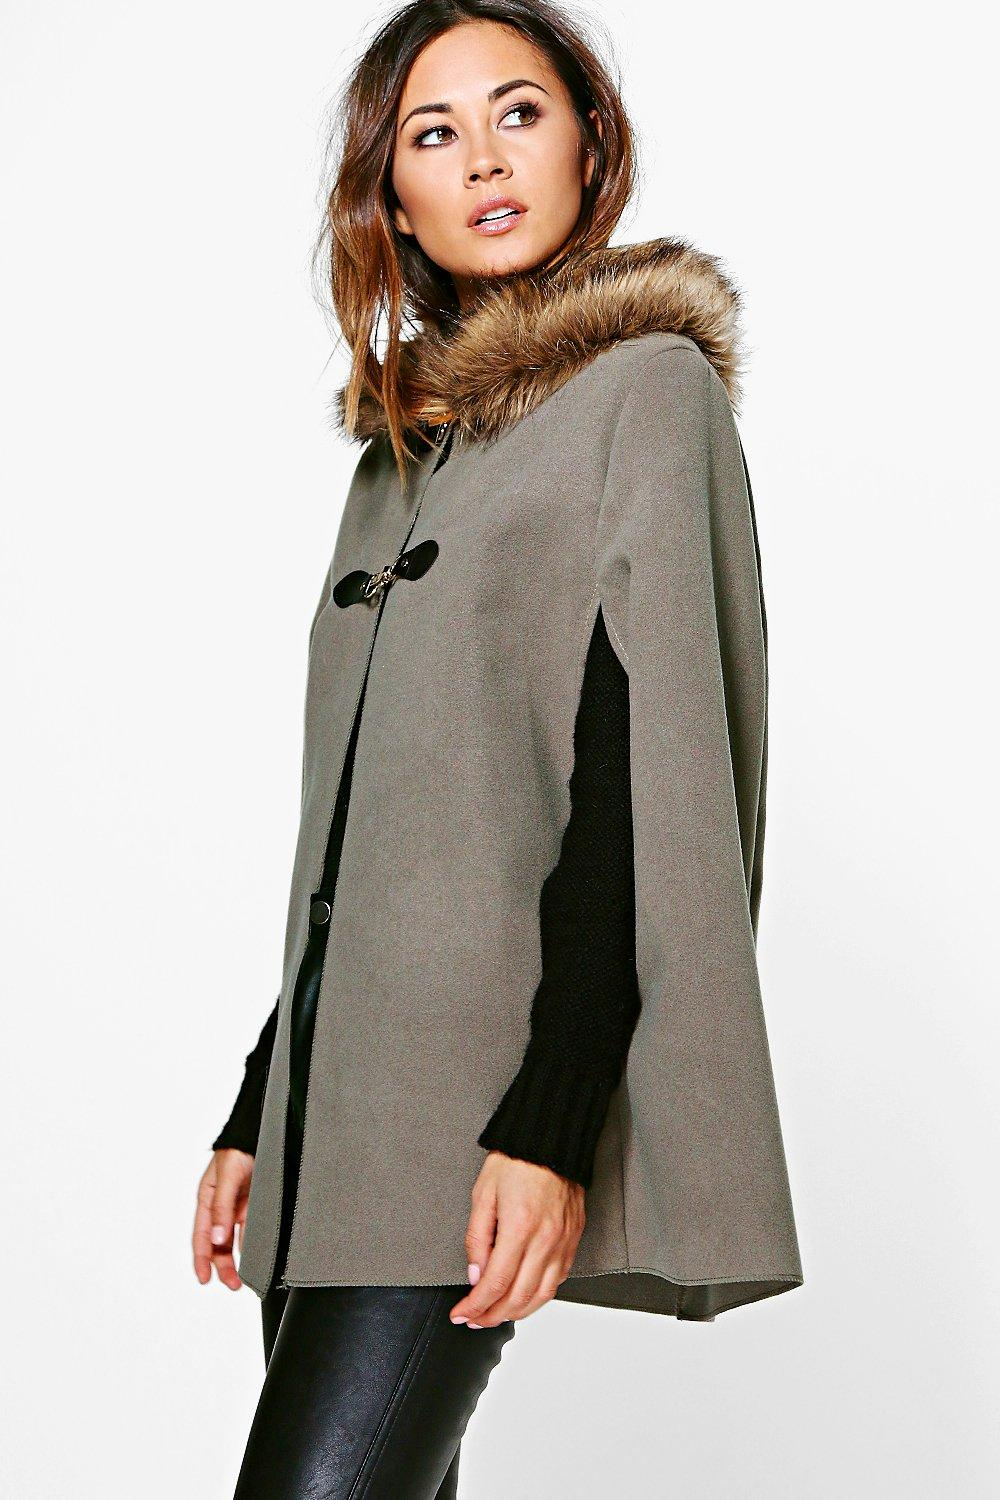 Shop 1960s Style Coats and Jackets Olivia Faux Fur Collar Wool Look Cape mocha $37.00 AT vintagedancer.com